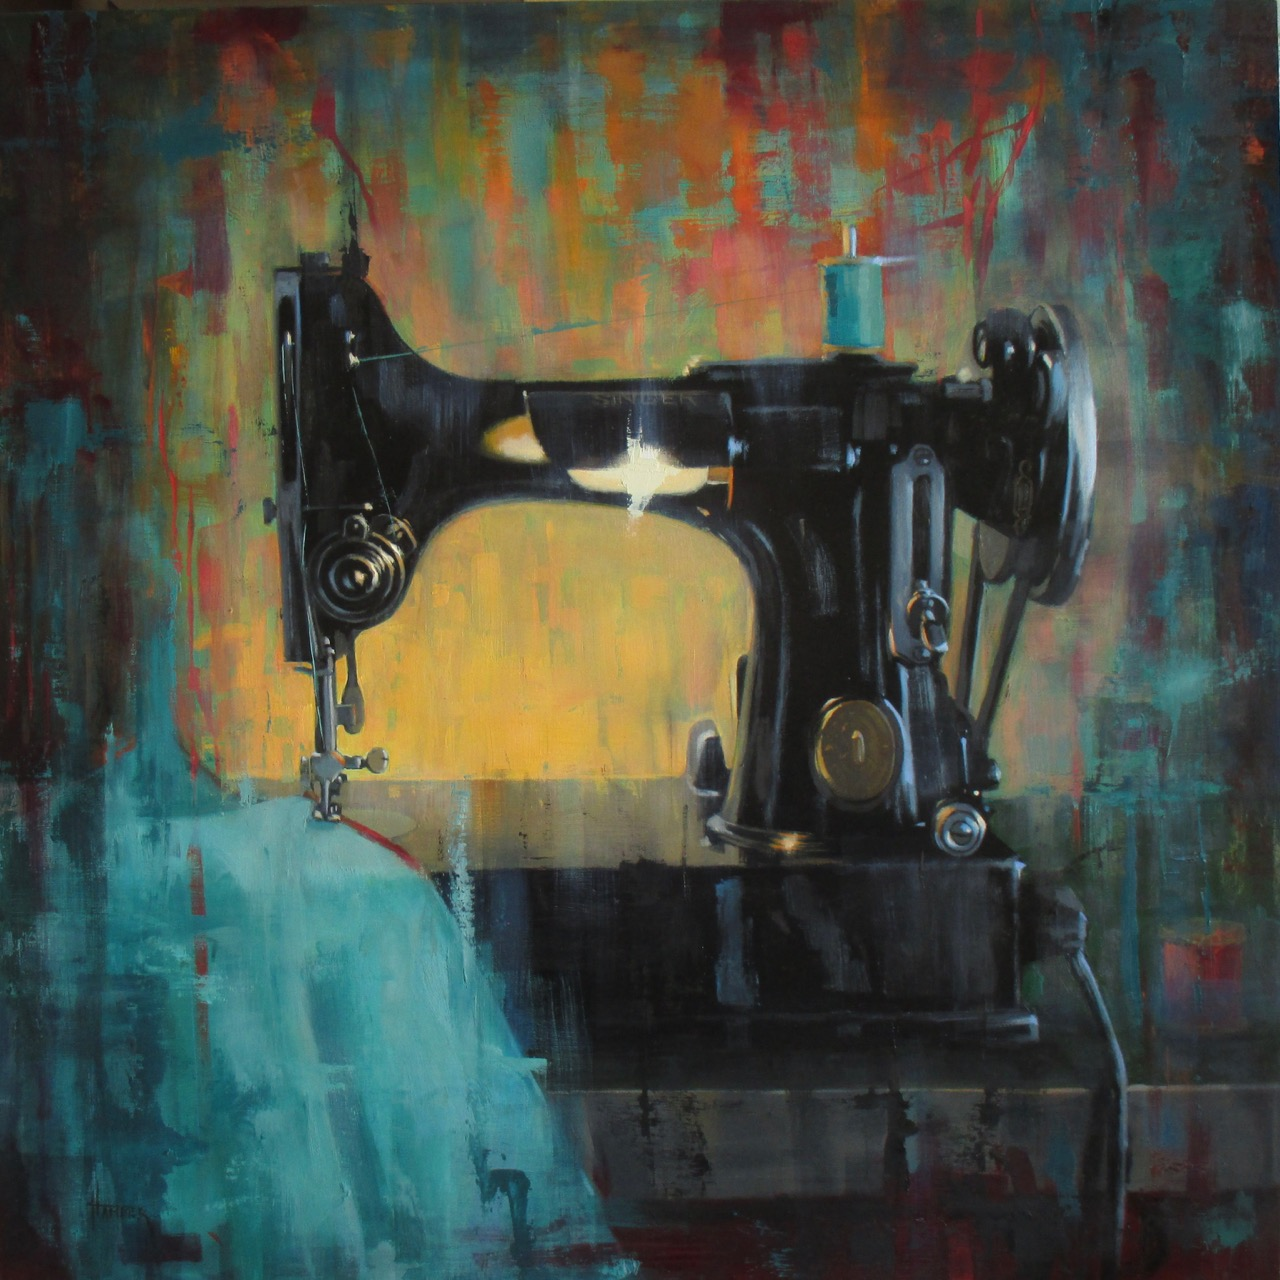 """Singer Sewing No2"" by Claudia Hammer, oil on panel, 20x20in, 2017"